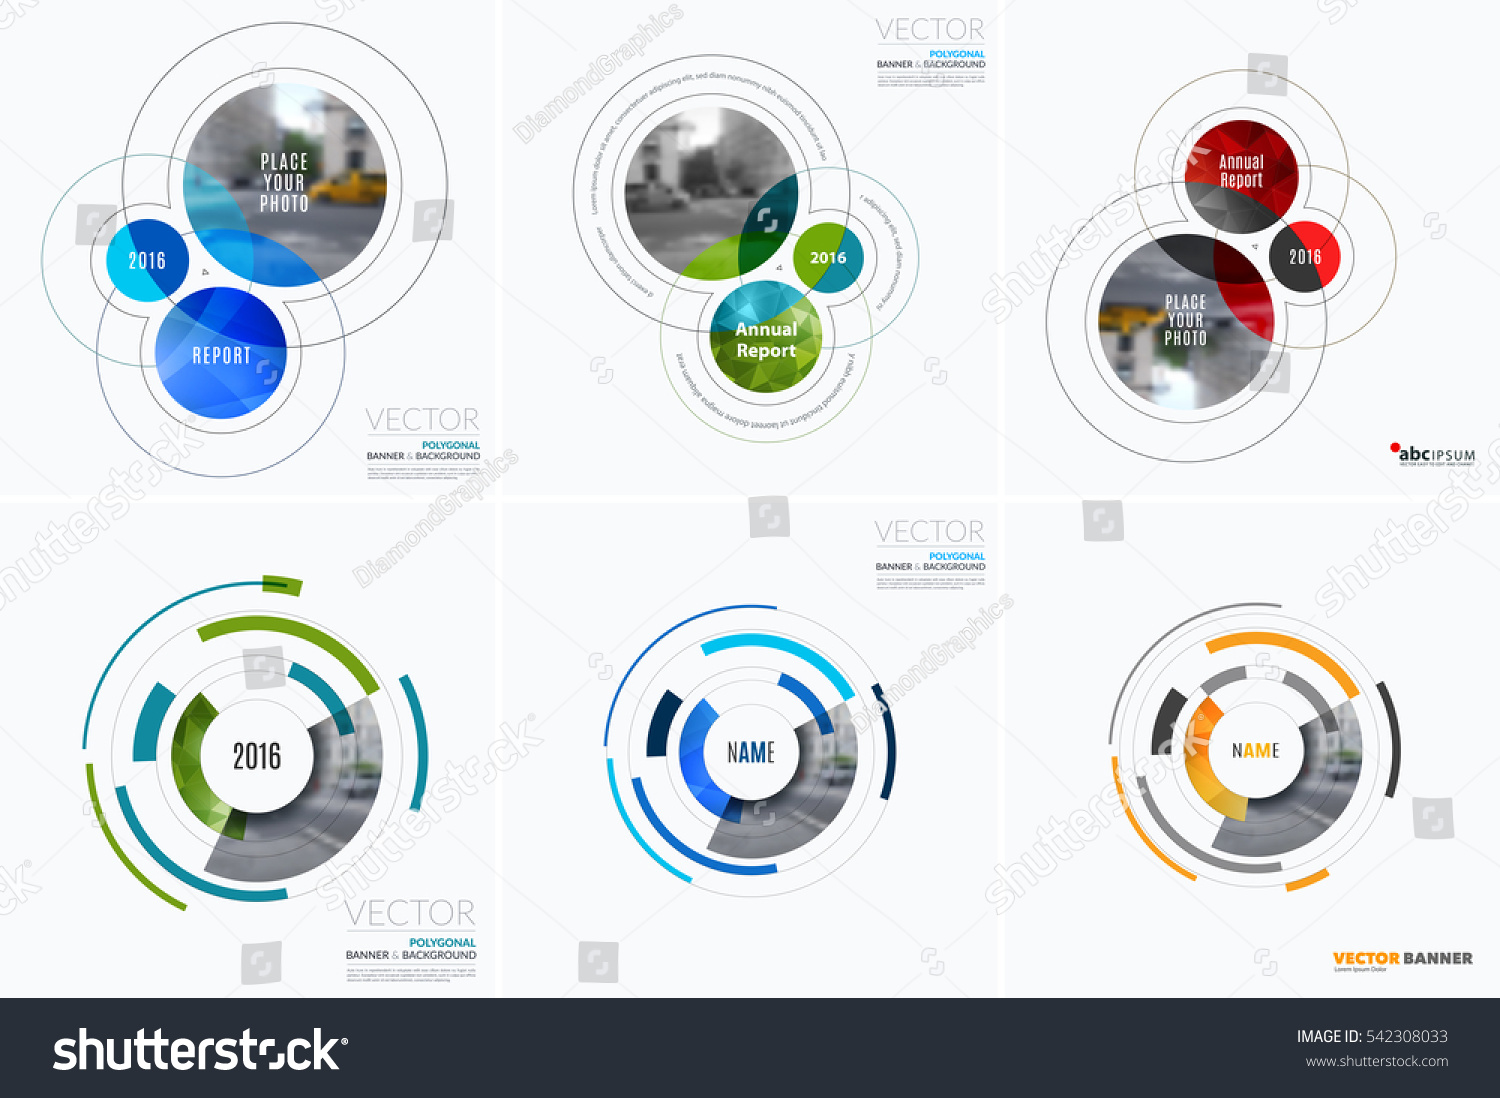 Business Vector Design Elements Graphic Layout Stock Vector ...